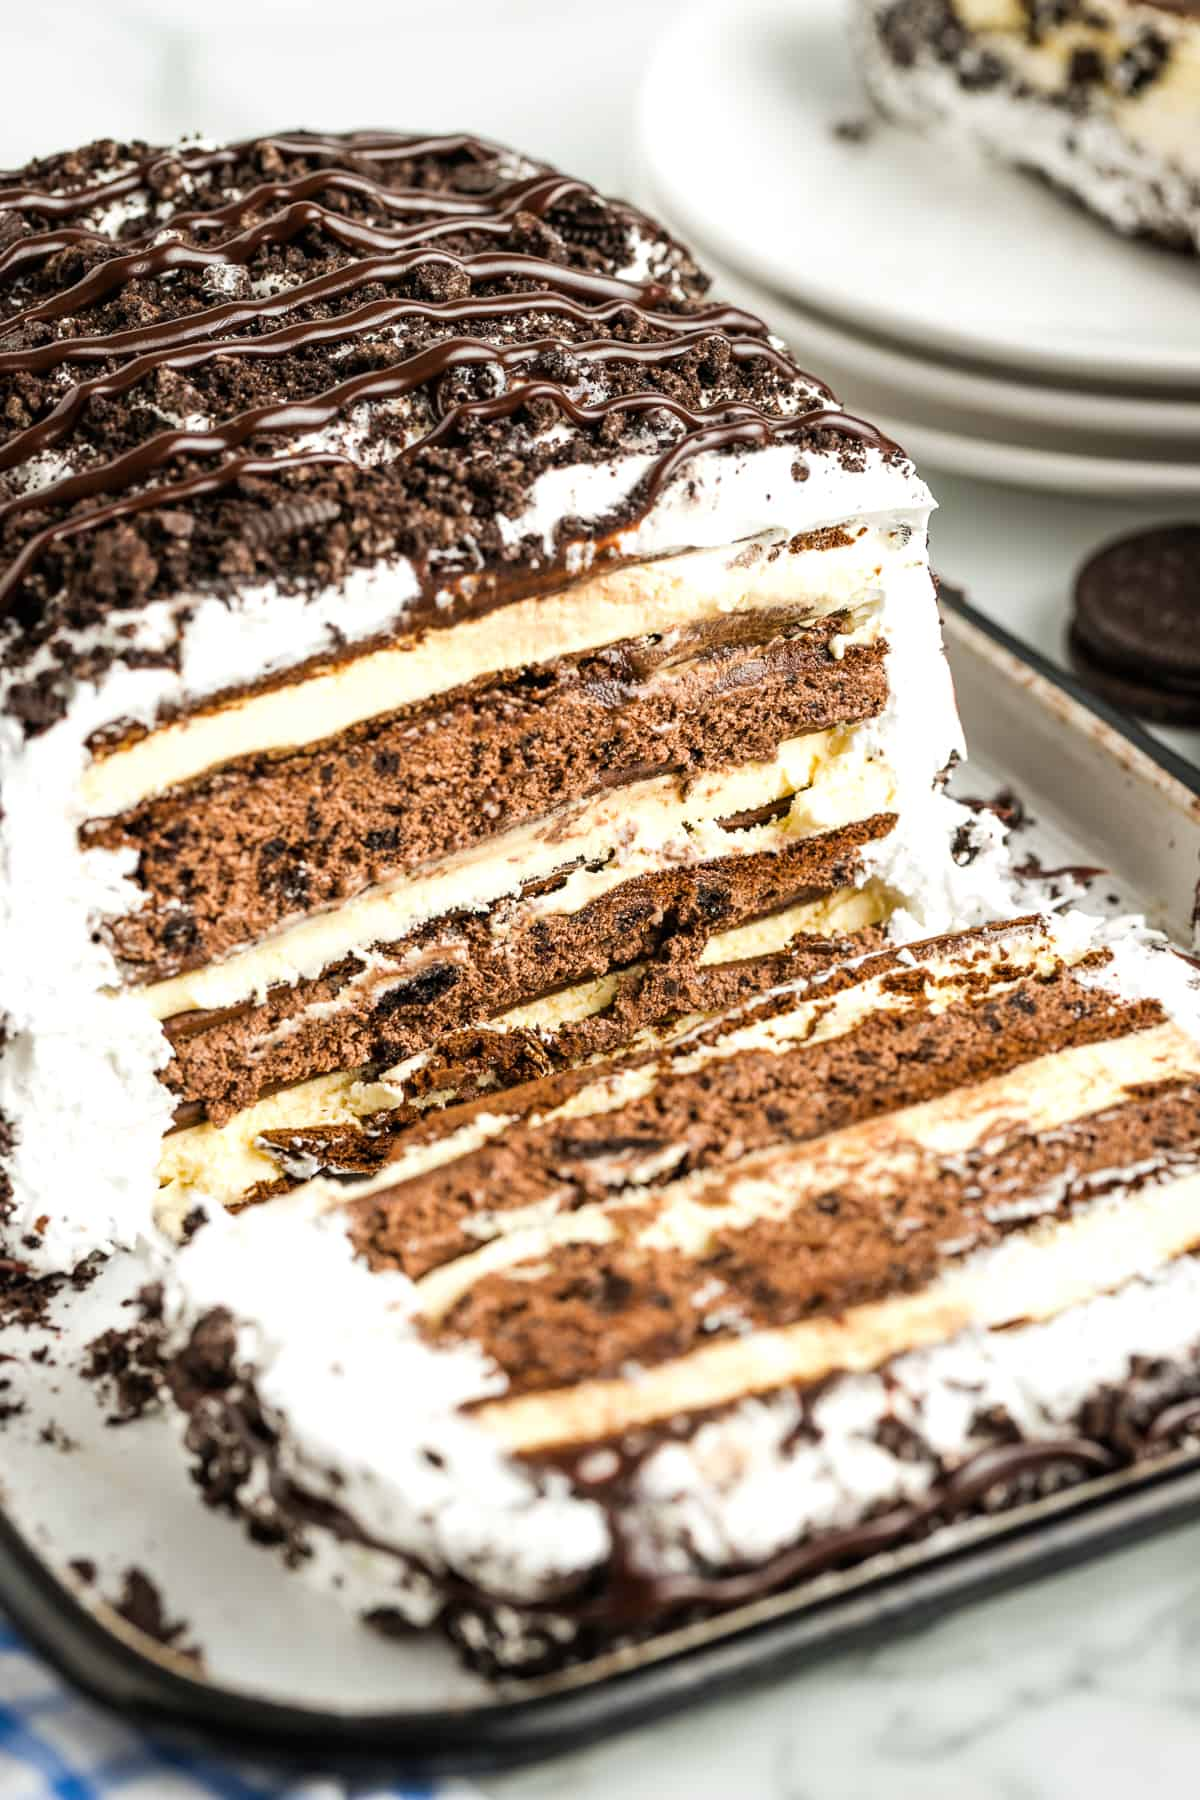 No Bake Ice Cream Sandwich Cake with a slice